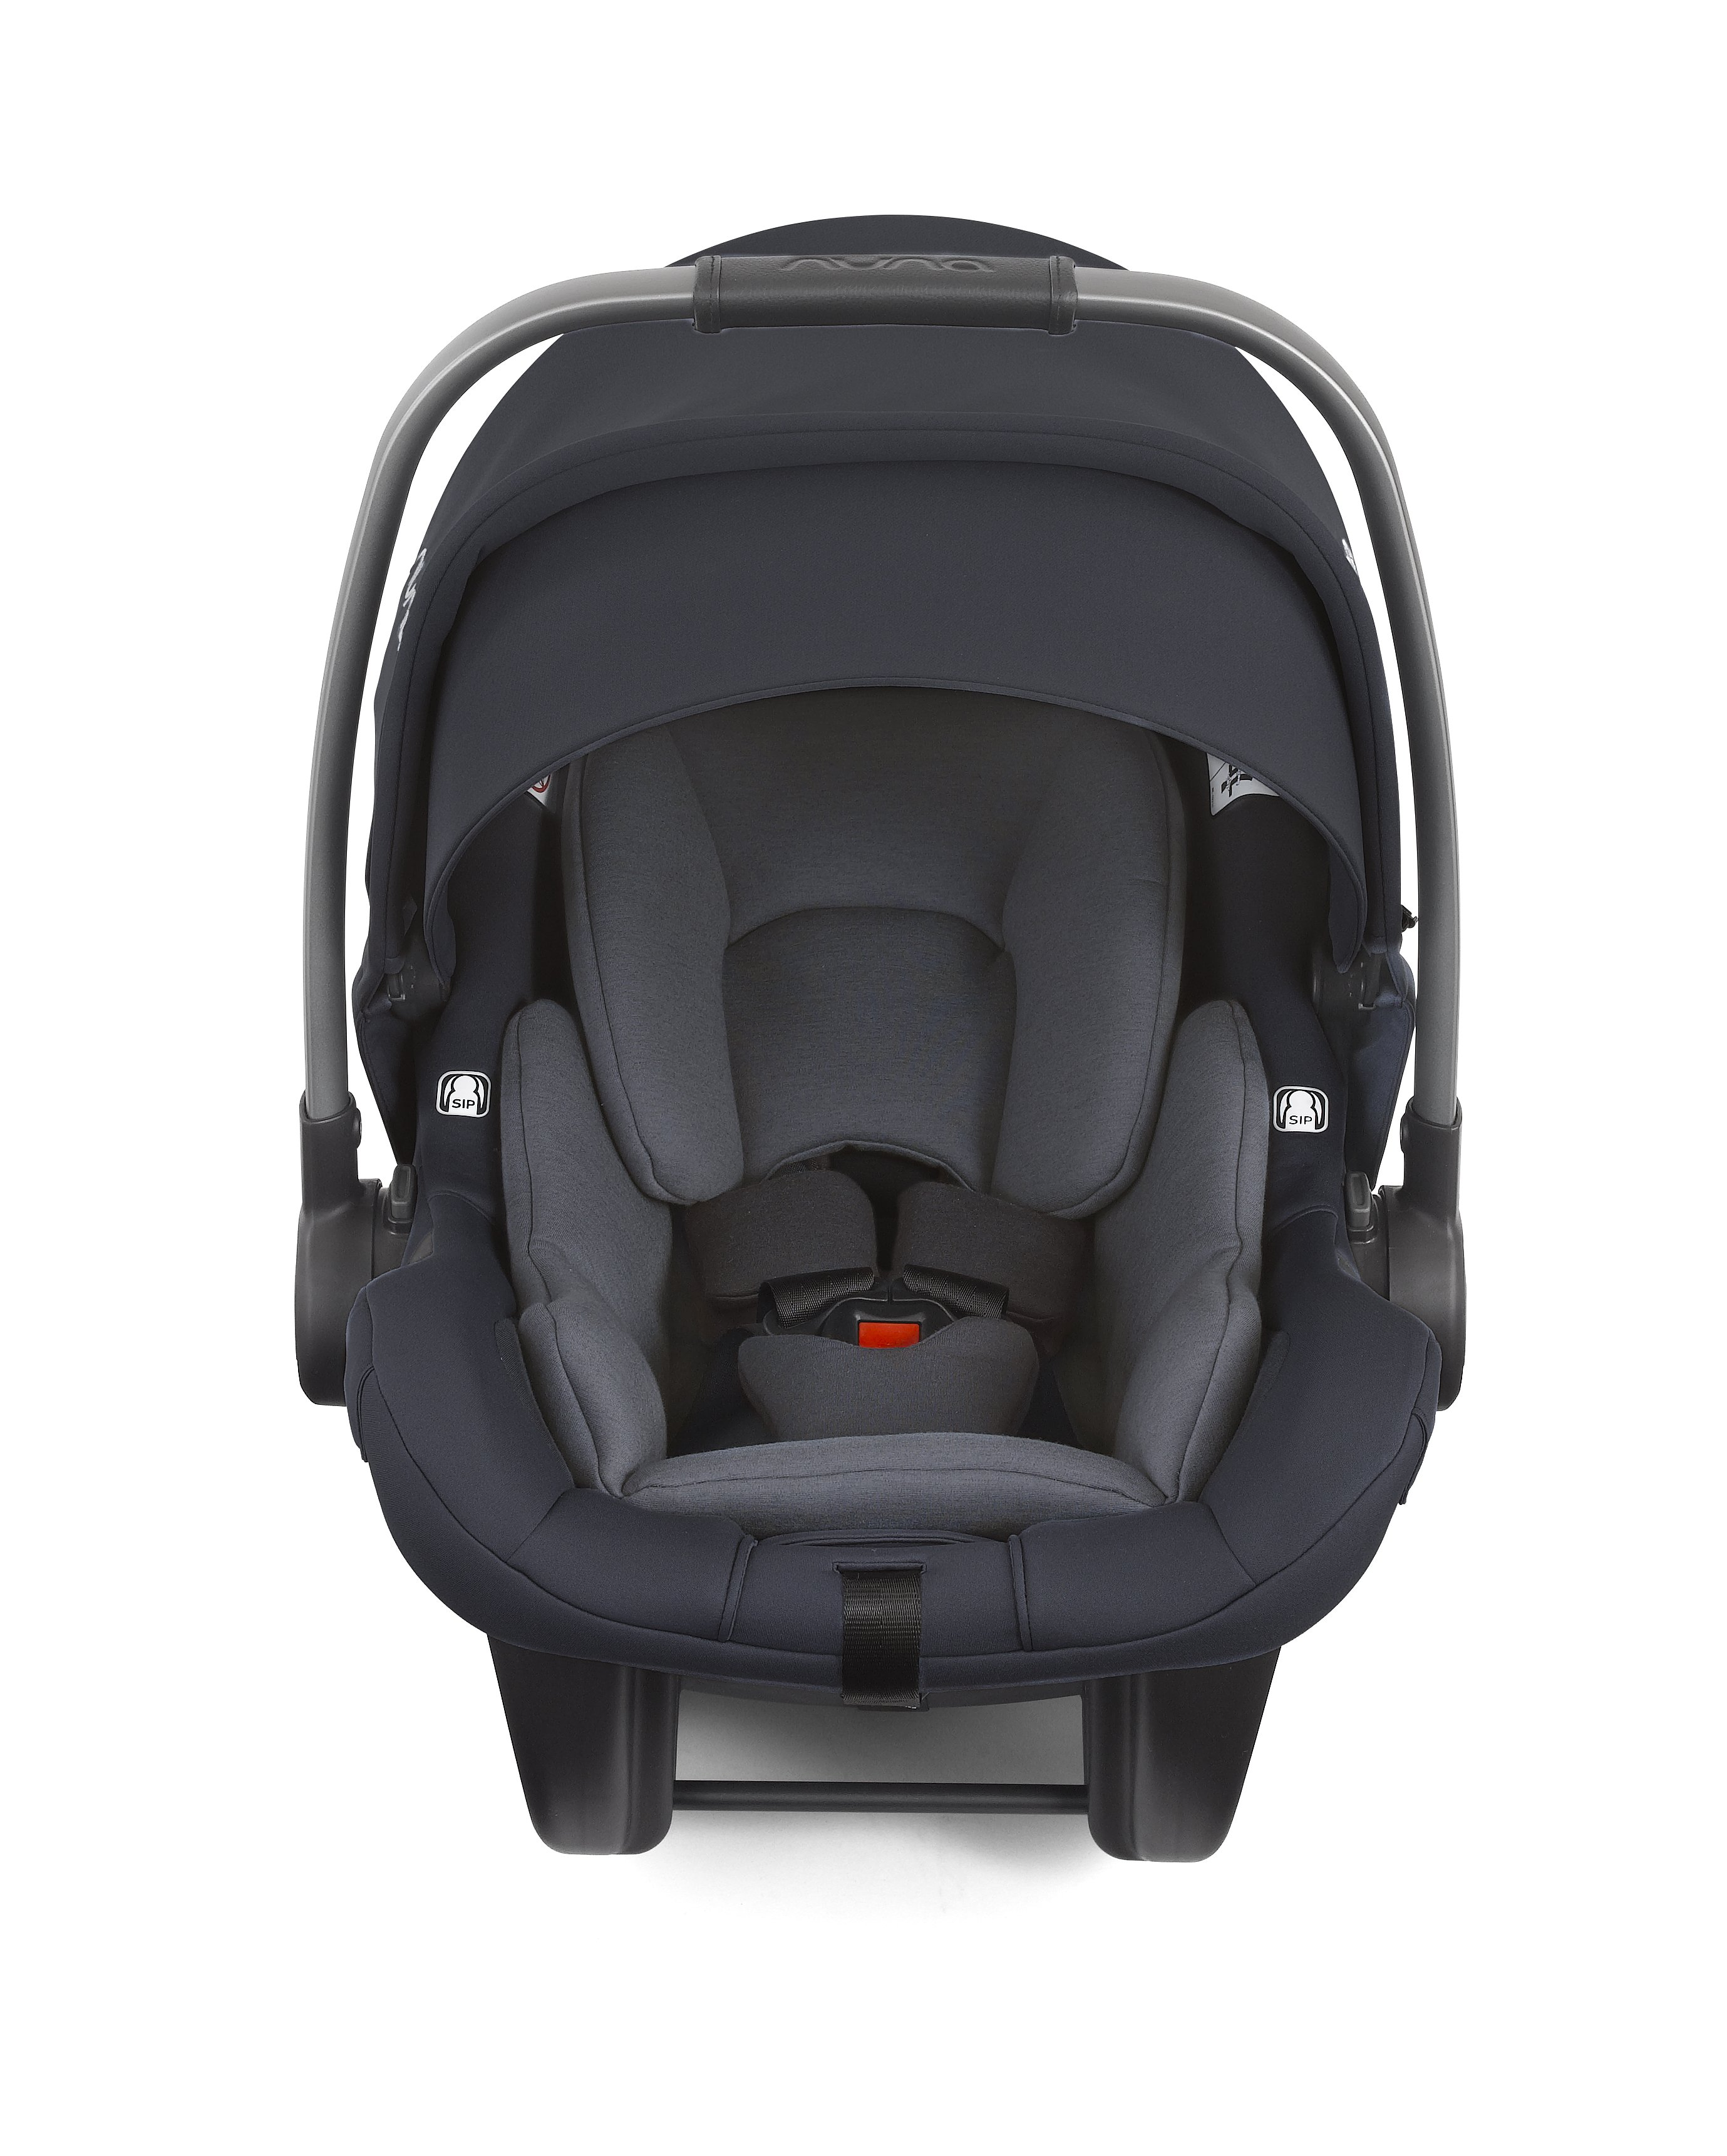 Bugaboo Runner Complete with Chassis and Seat CLEARANCE